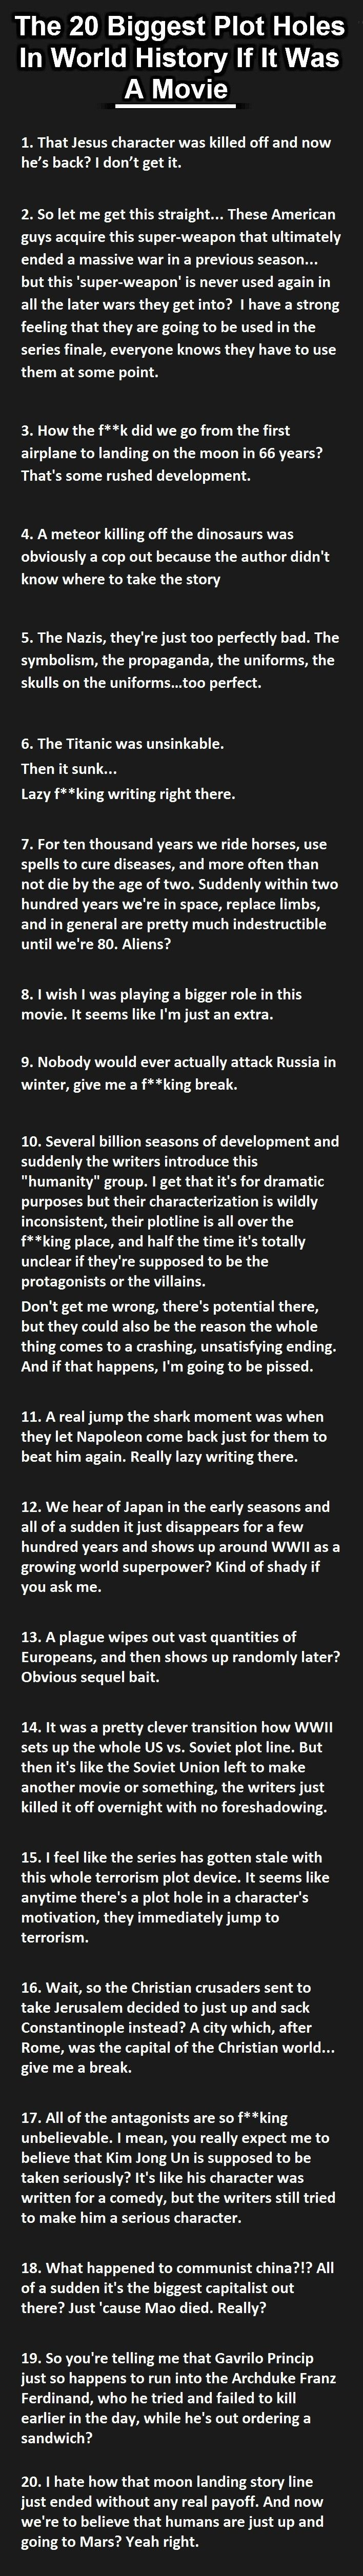 If Human History Were TV Show - My thoughts on this